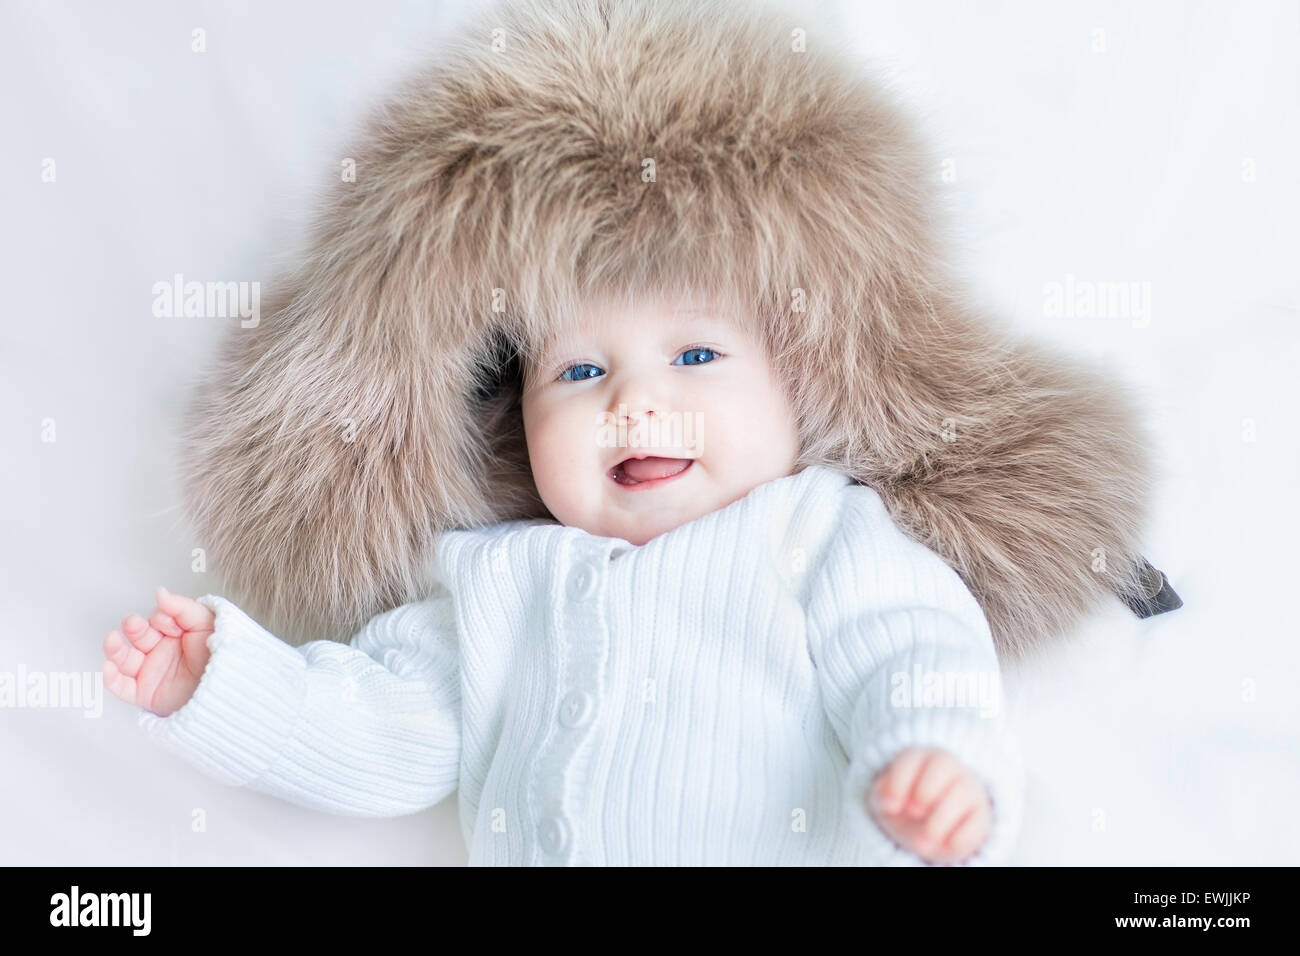 c3f7fd3dd Funny cute baby girl with big blue eyes wearing a huge winter hat ...